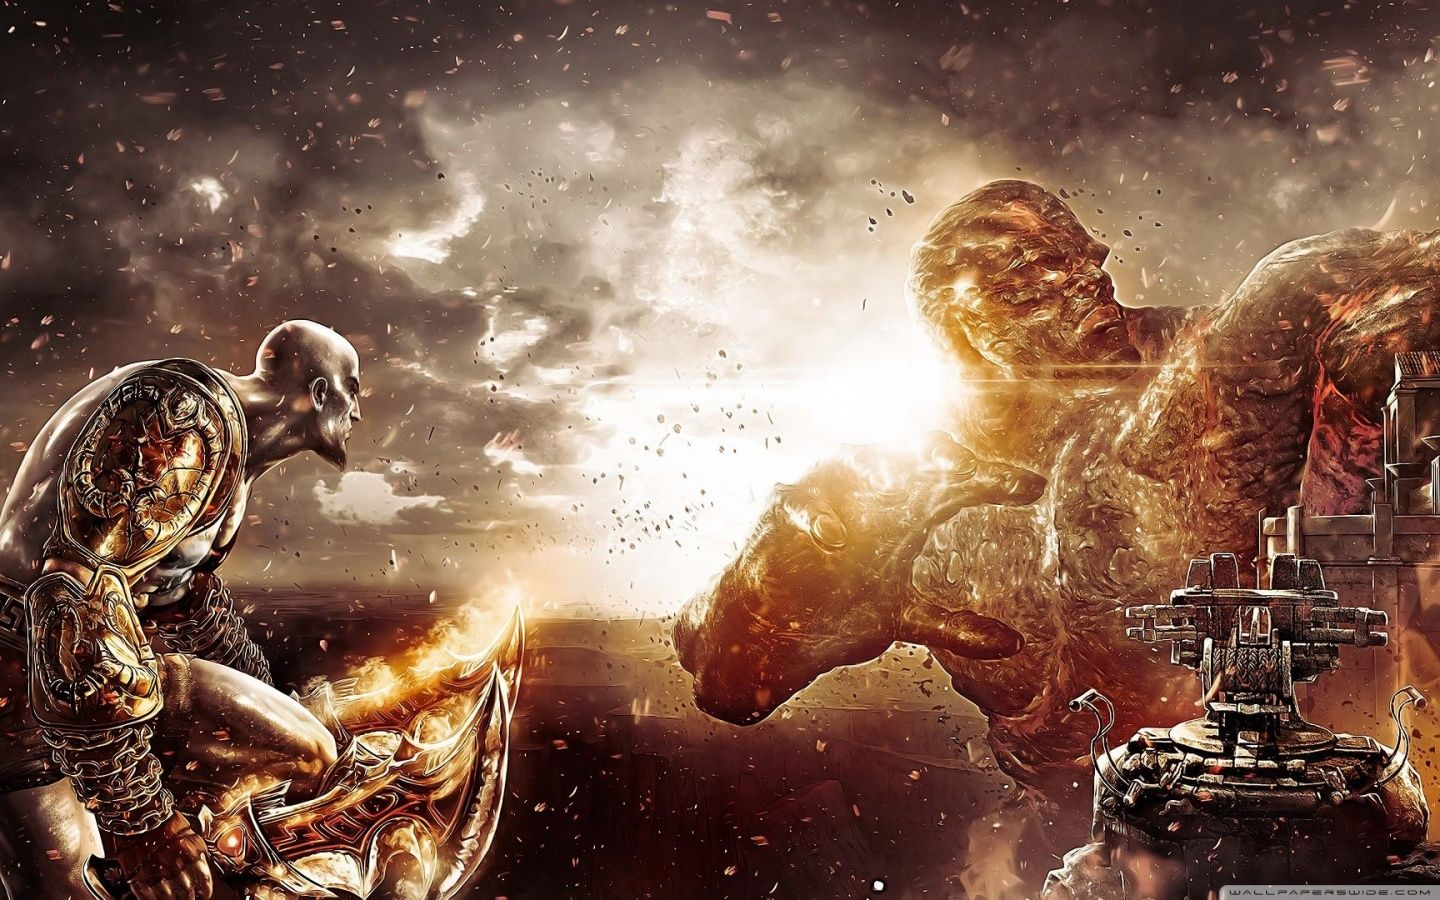 God Of War Wallpaper 1080p Firefox Wallpaper Free Download